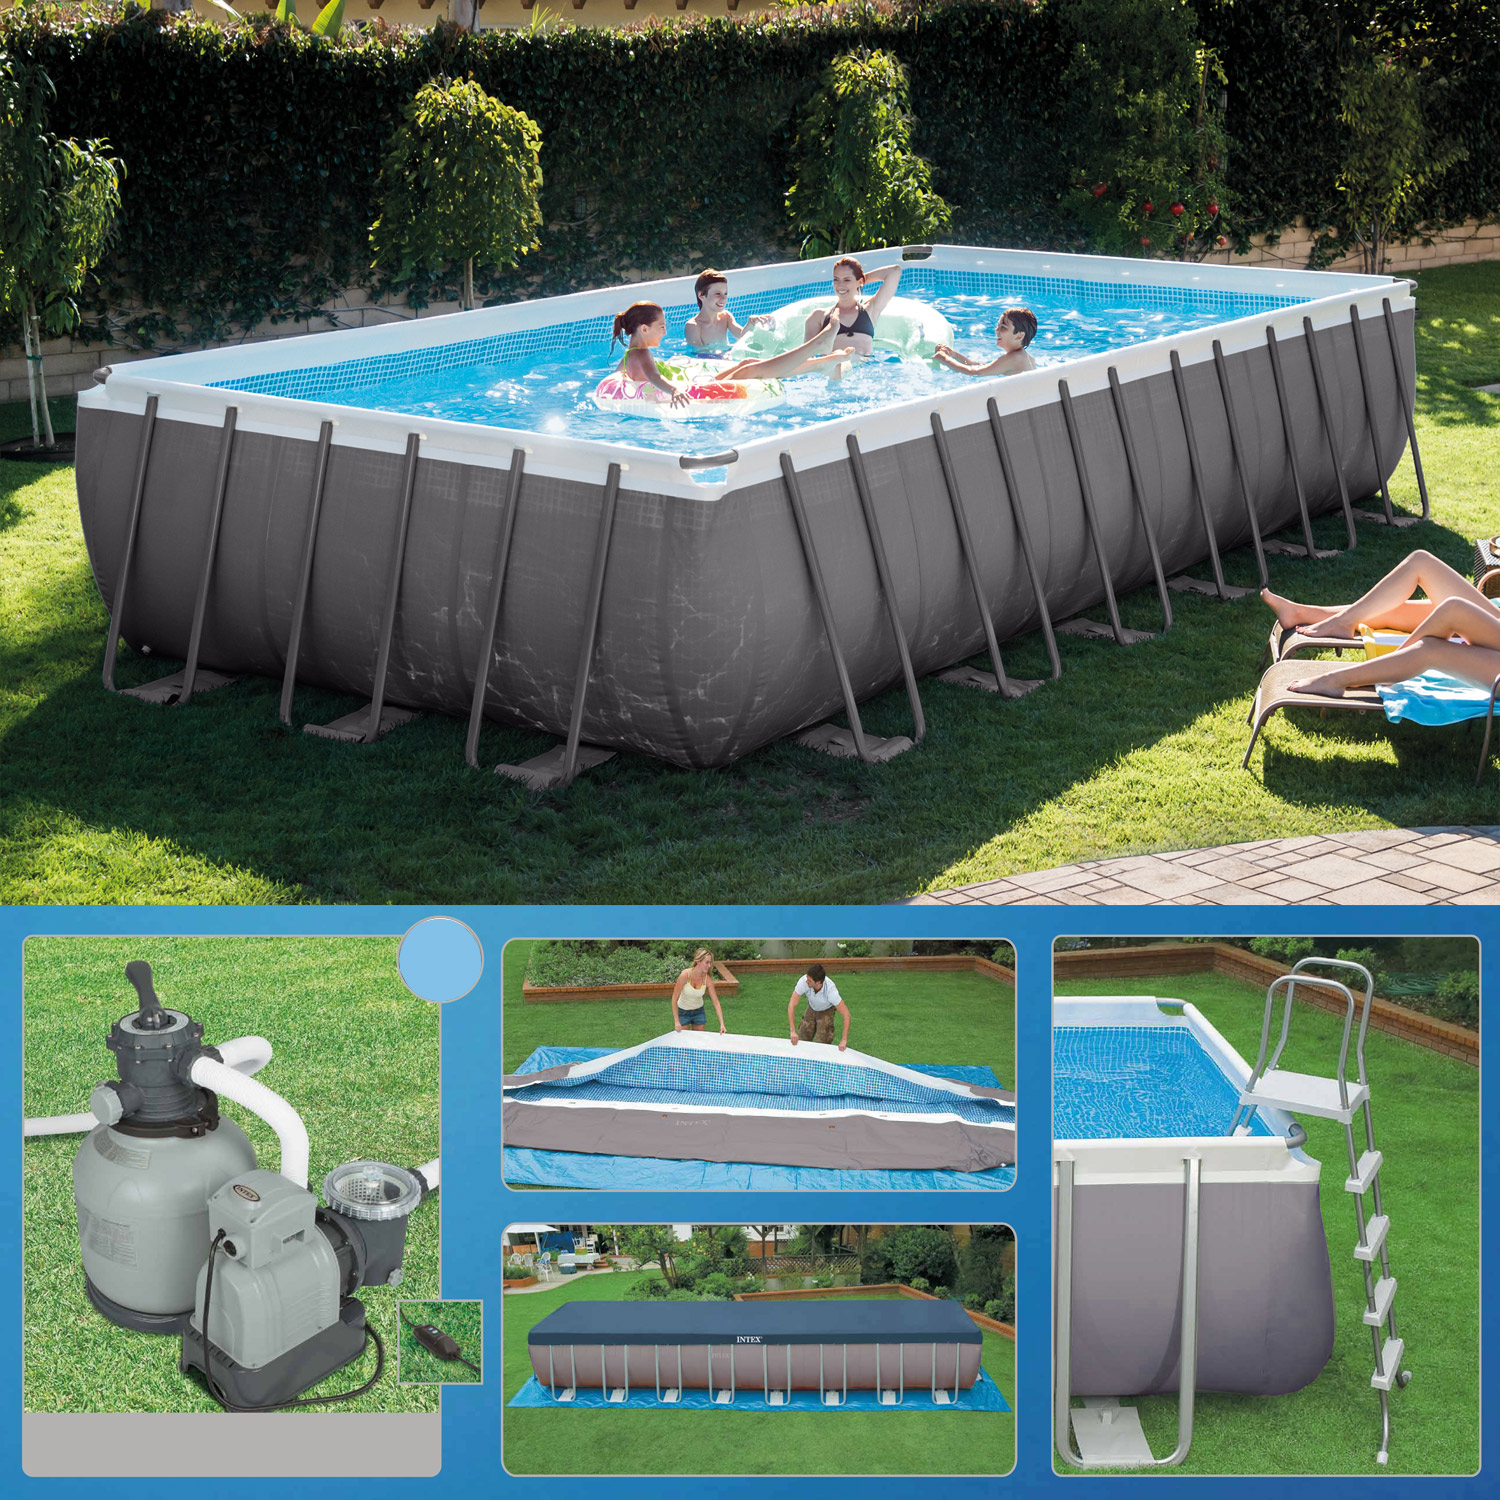 intex 732 x 366 x 132 swimming pool rechteck stahlbecken frame schwimmbad 28362 ebay. Black Bedroom Furniture Sets. Home Design Ideas